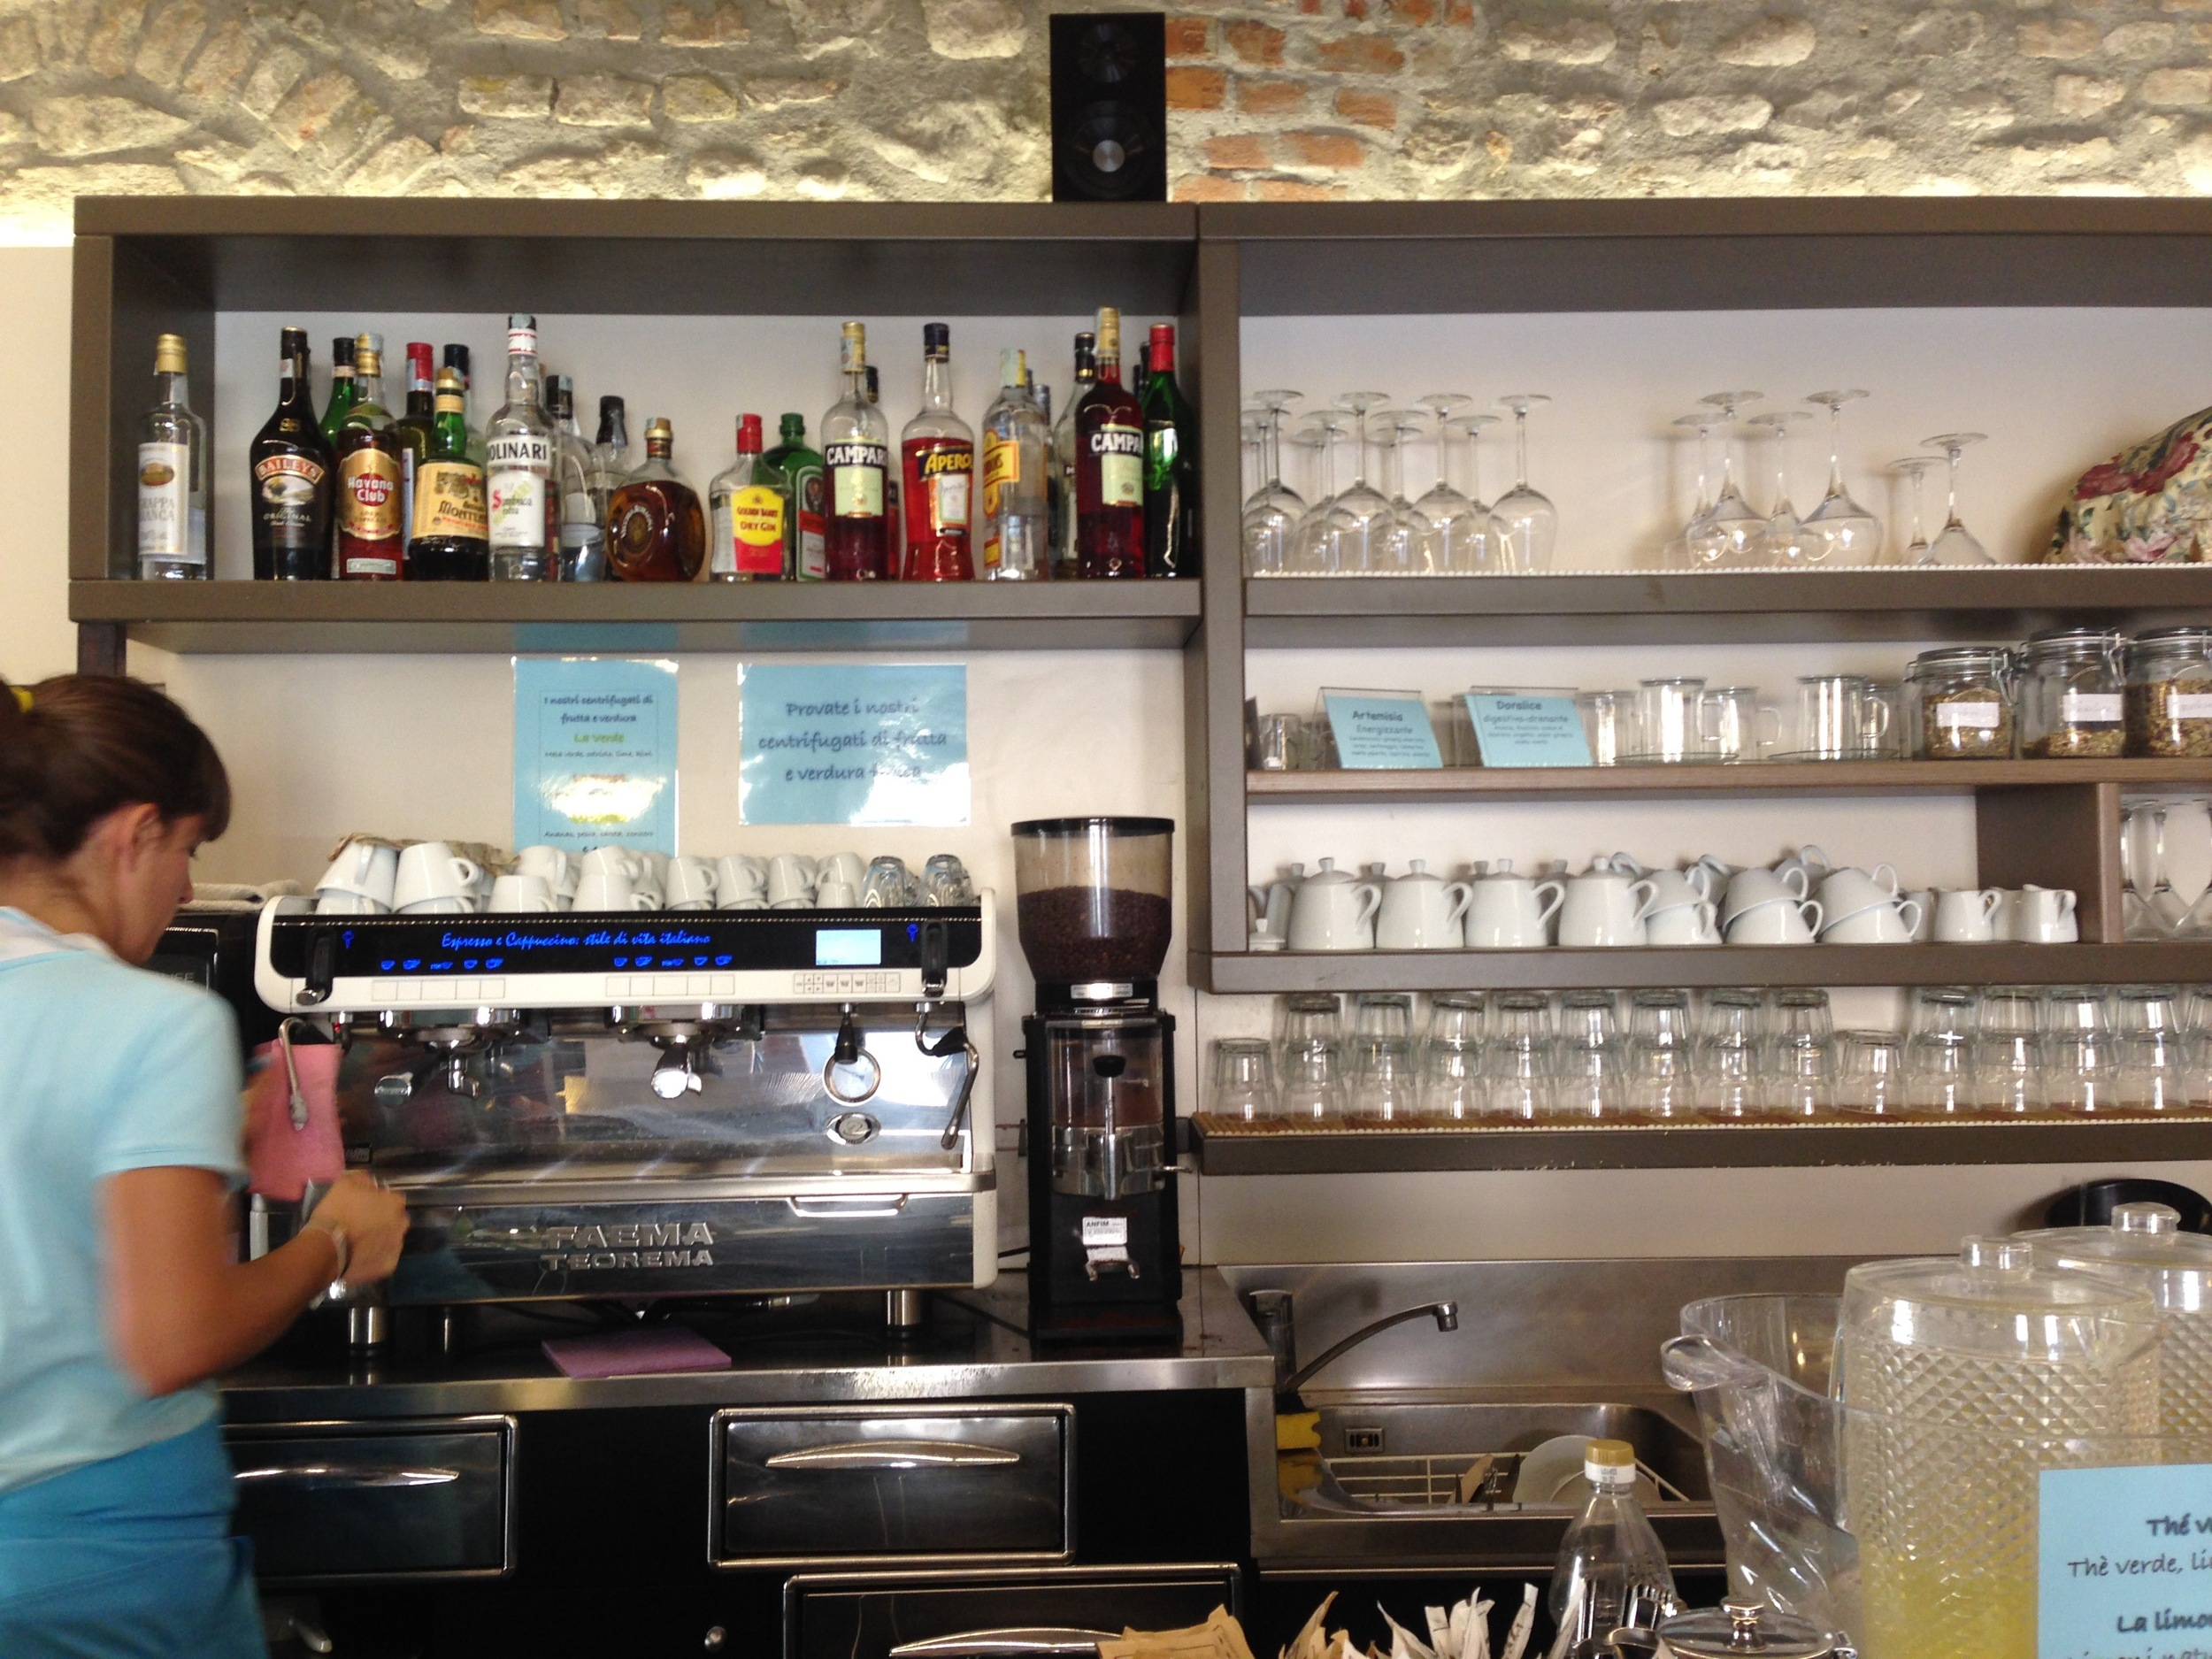 And all the caffe bars double as real bars fully stocked will all your afternoon apertif needs.